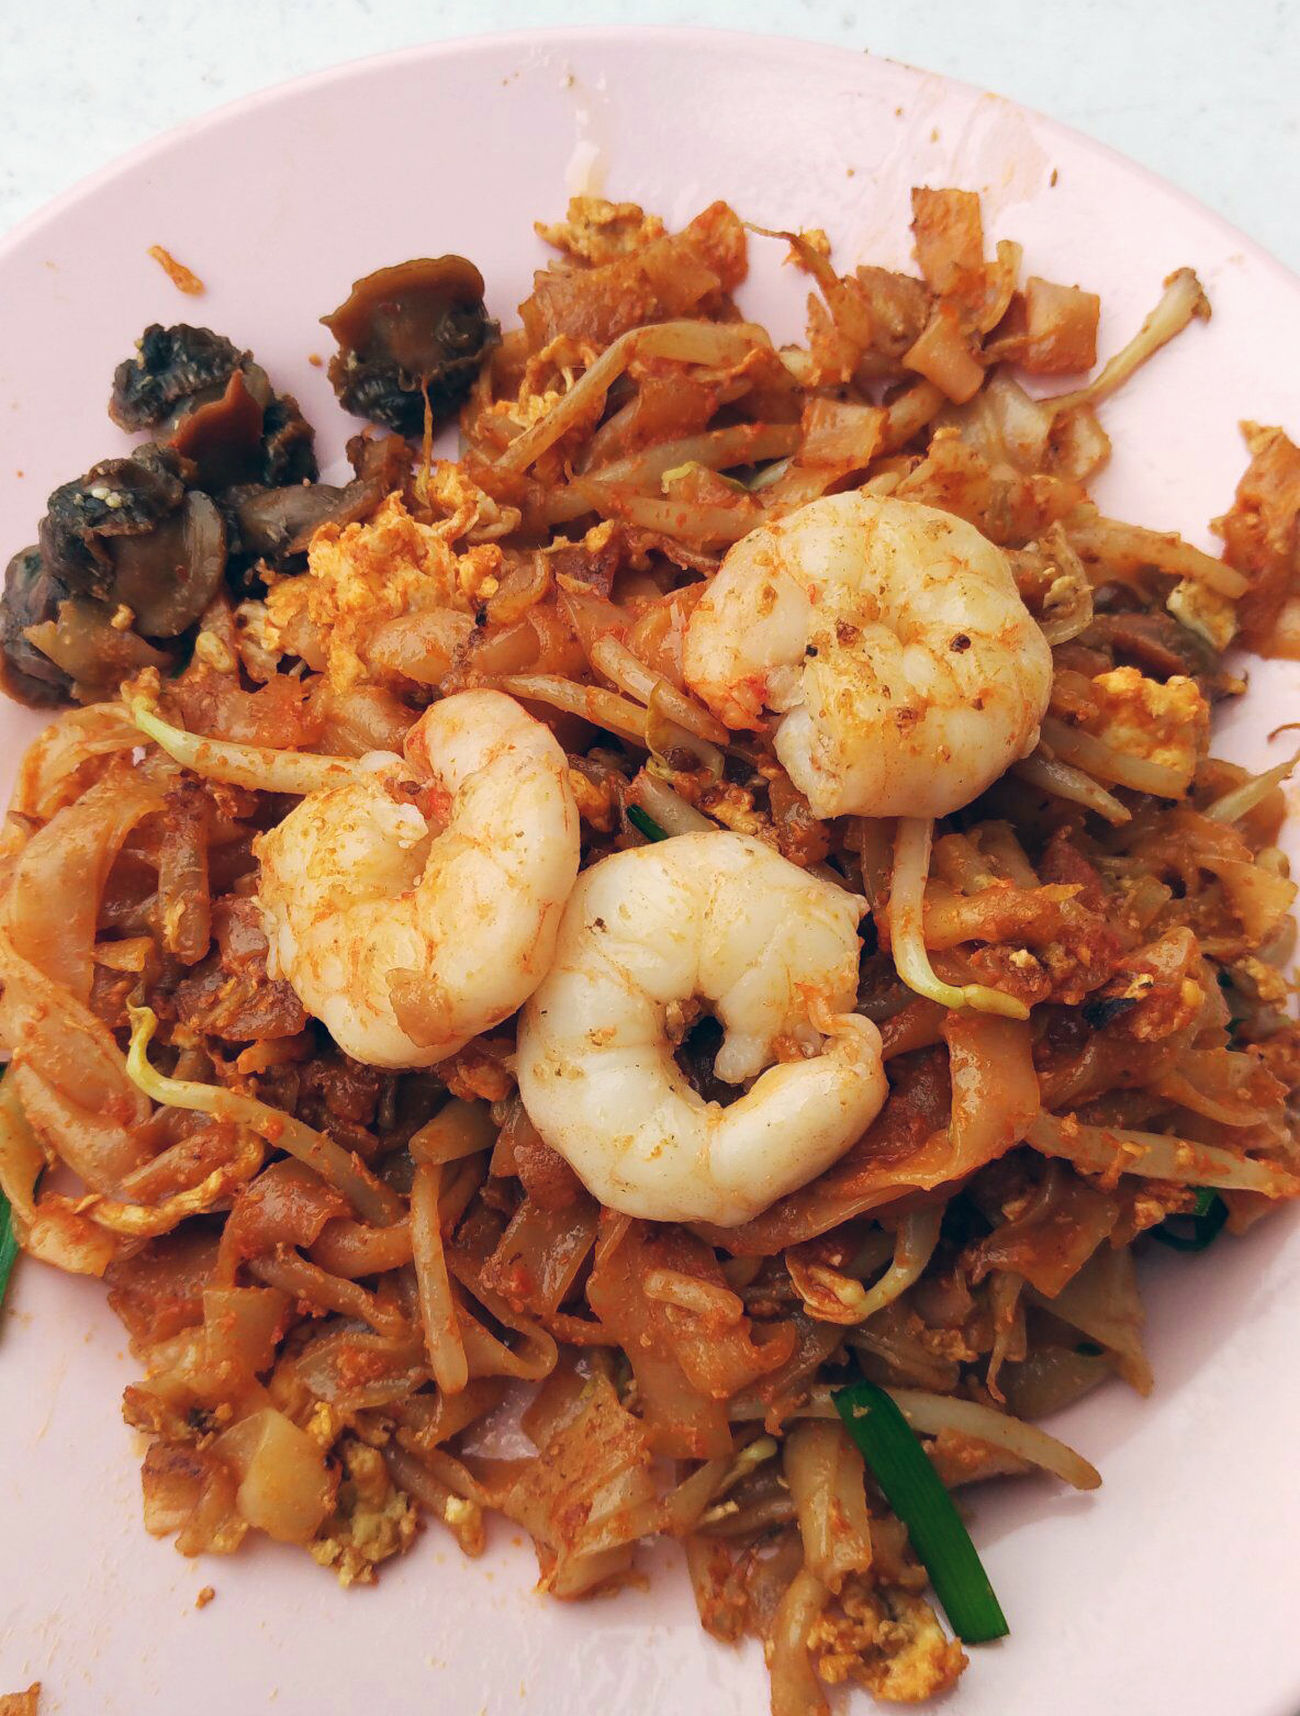 A plate of tasty Penang Char Kway Teow (Fried Rice Noodle), topped with prawns and cockles, in George Town. Clean Plate, No Food Cockles Cooked With Eggs, Food Meal, Traditional Meal, Penang, Hawker's Food, Plain Noodles, Mmmm Prawn,